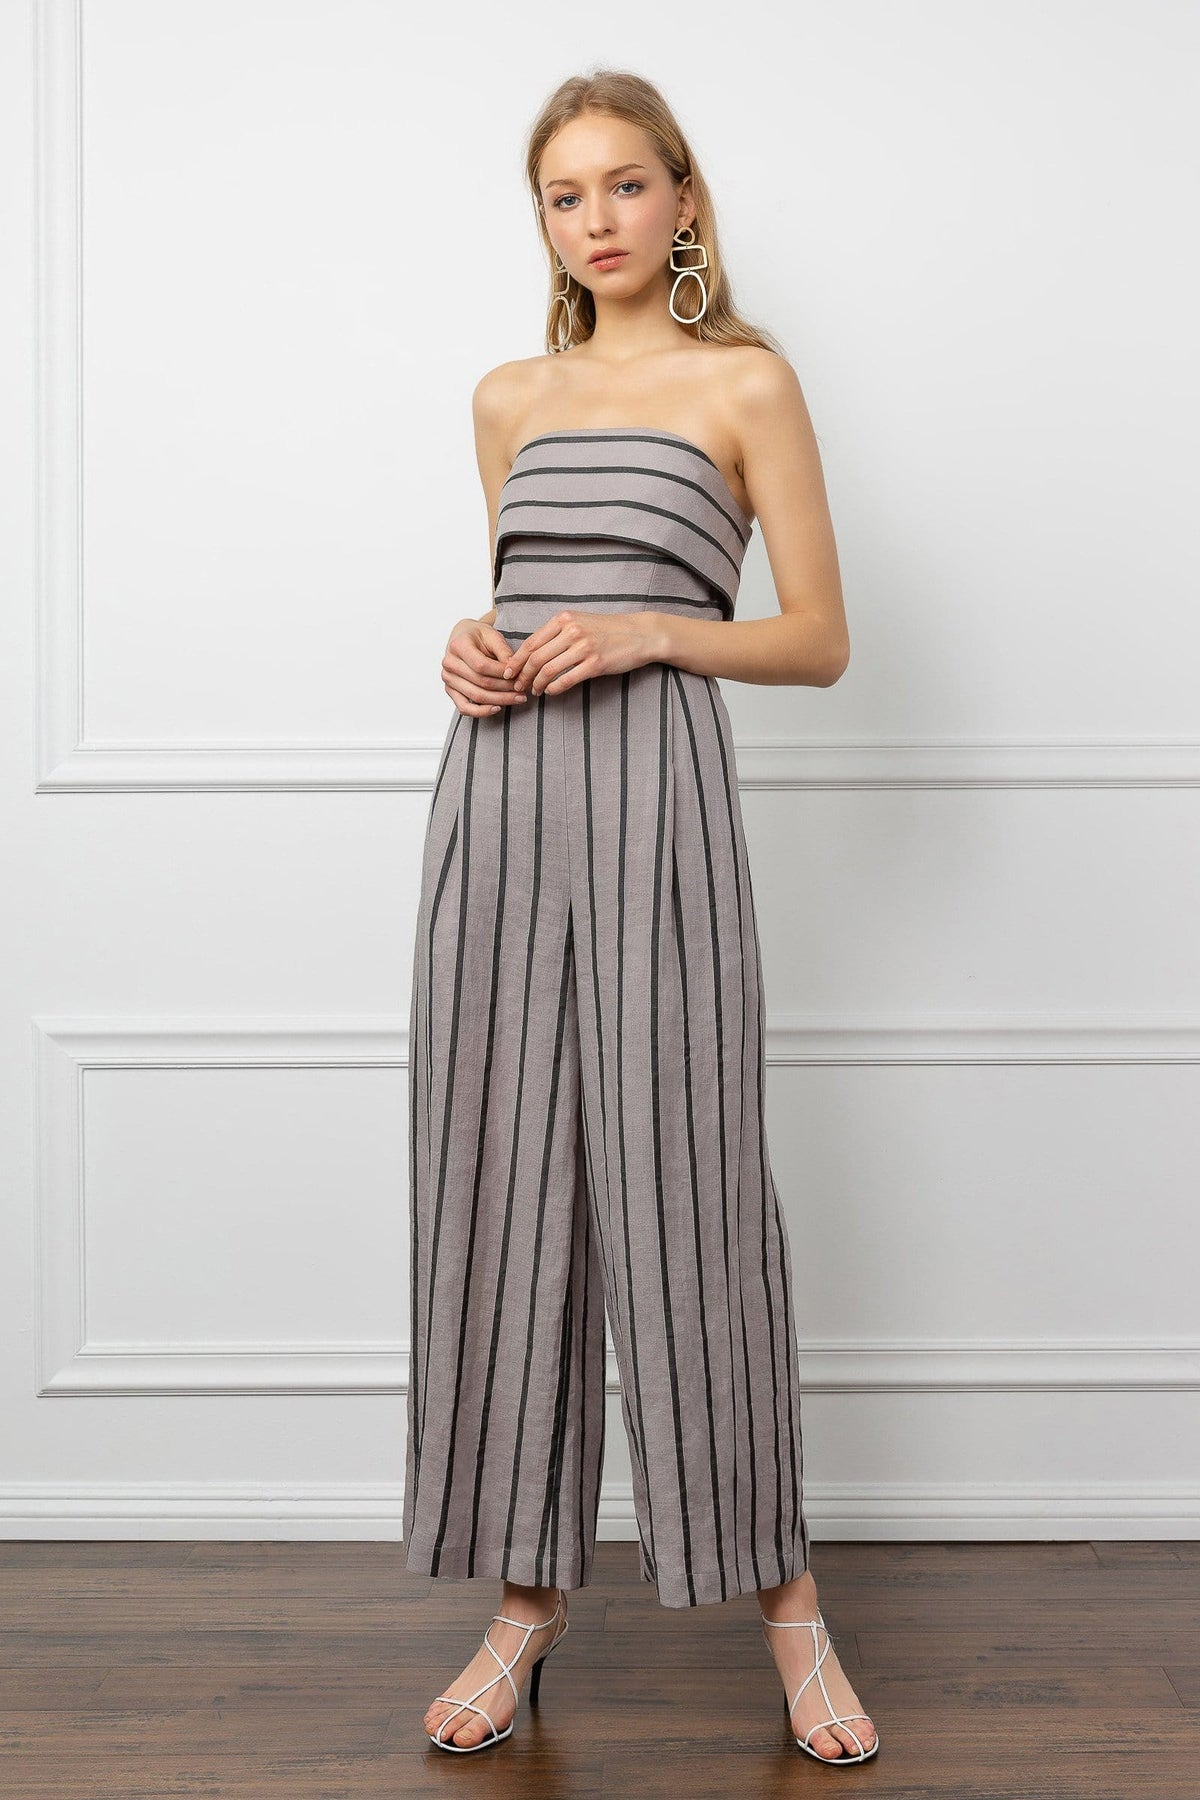 Grey Striped Strapless Jumpsuit | J.ING women's apparel